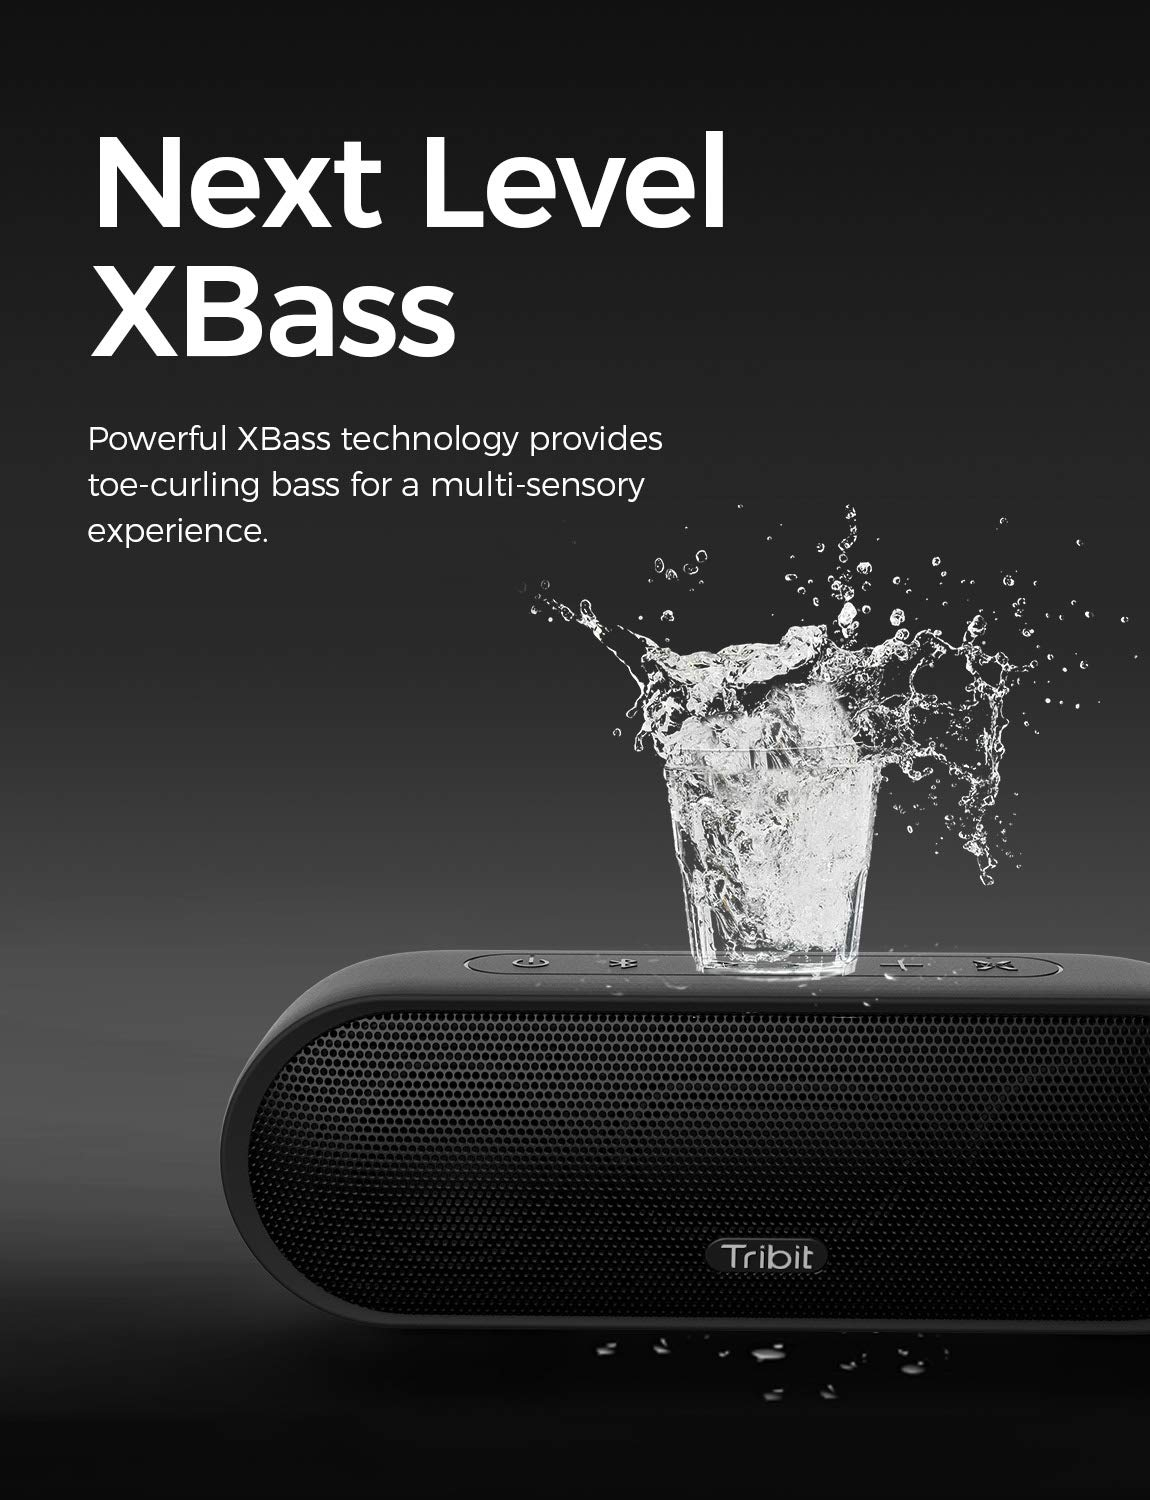 Tribit MaxSound Plus Portable Bluetooth Speaker, 24W Wireless Speaker with Powerful Louder Sound, Exceptional XBass, IPX7 Waterproof, 20-Hour Playtime, 100ft Bluetooth Range for Party, Travel, Outdoor by Tribit (Image #3)